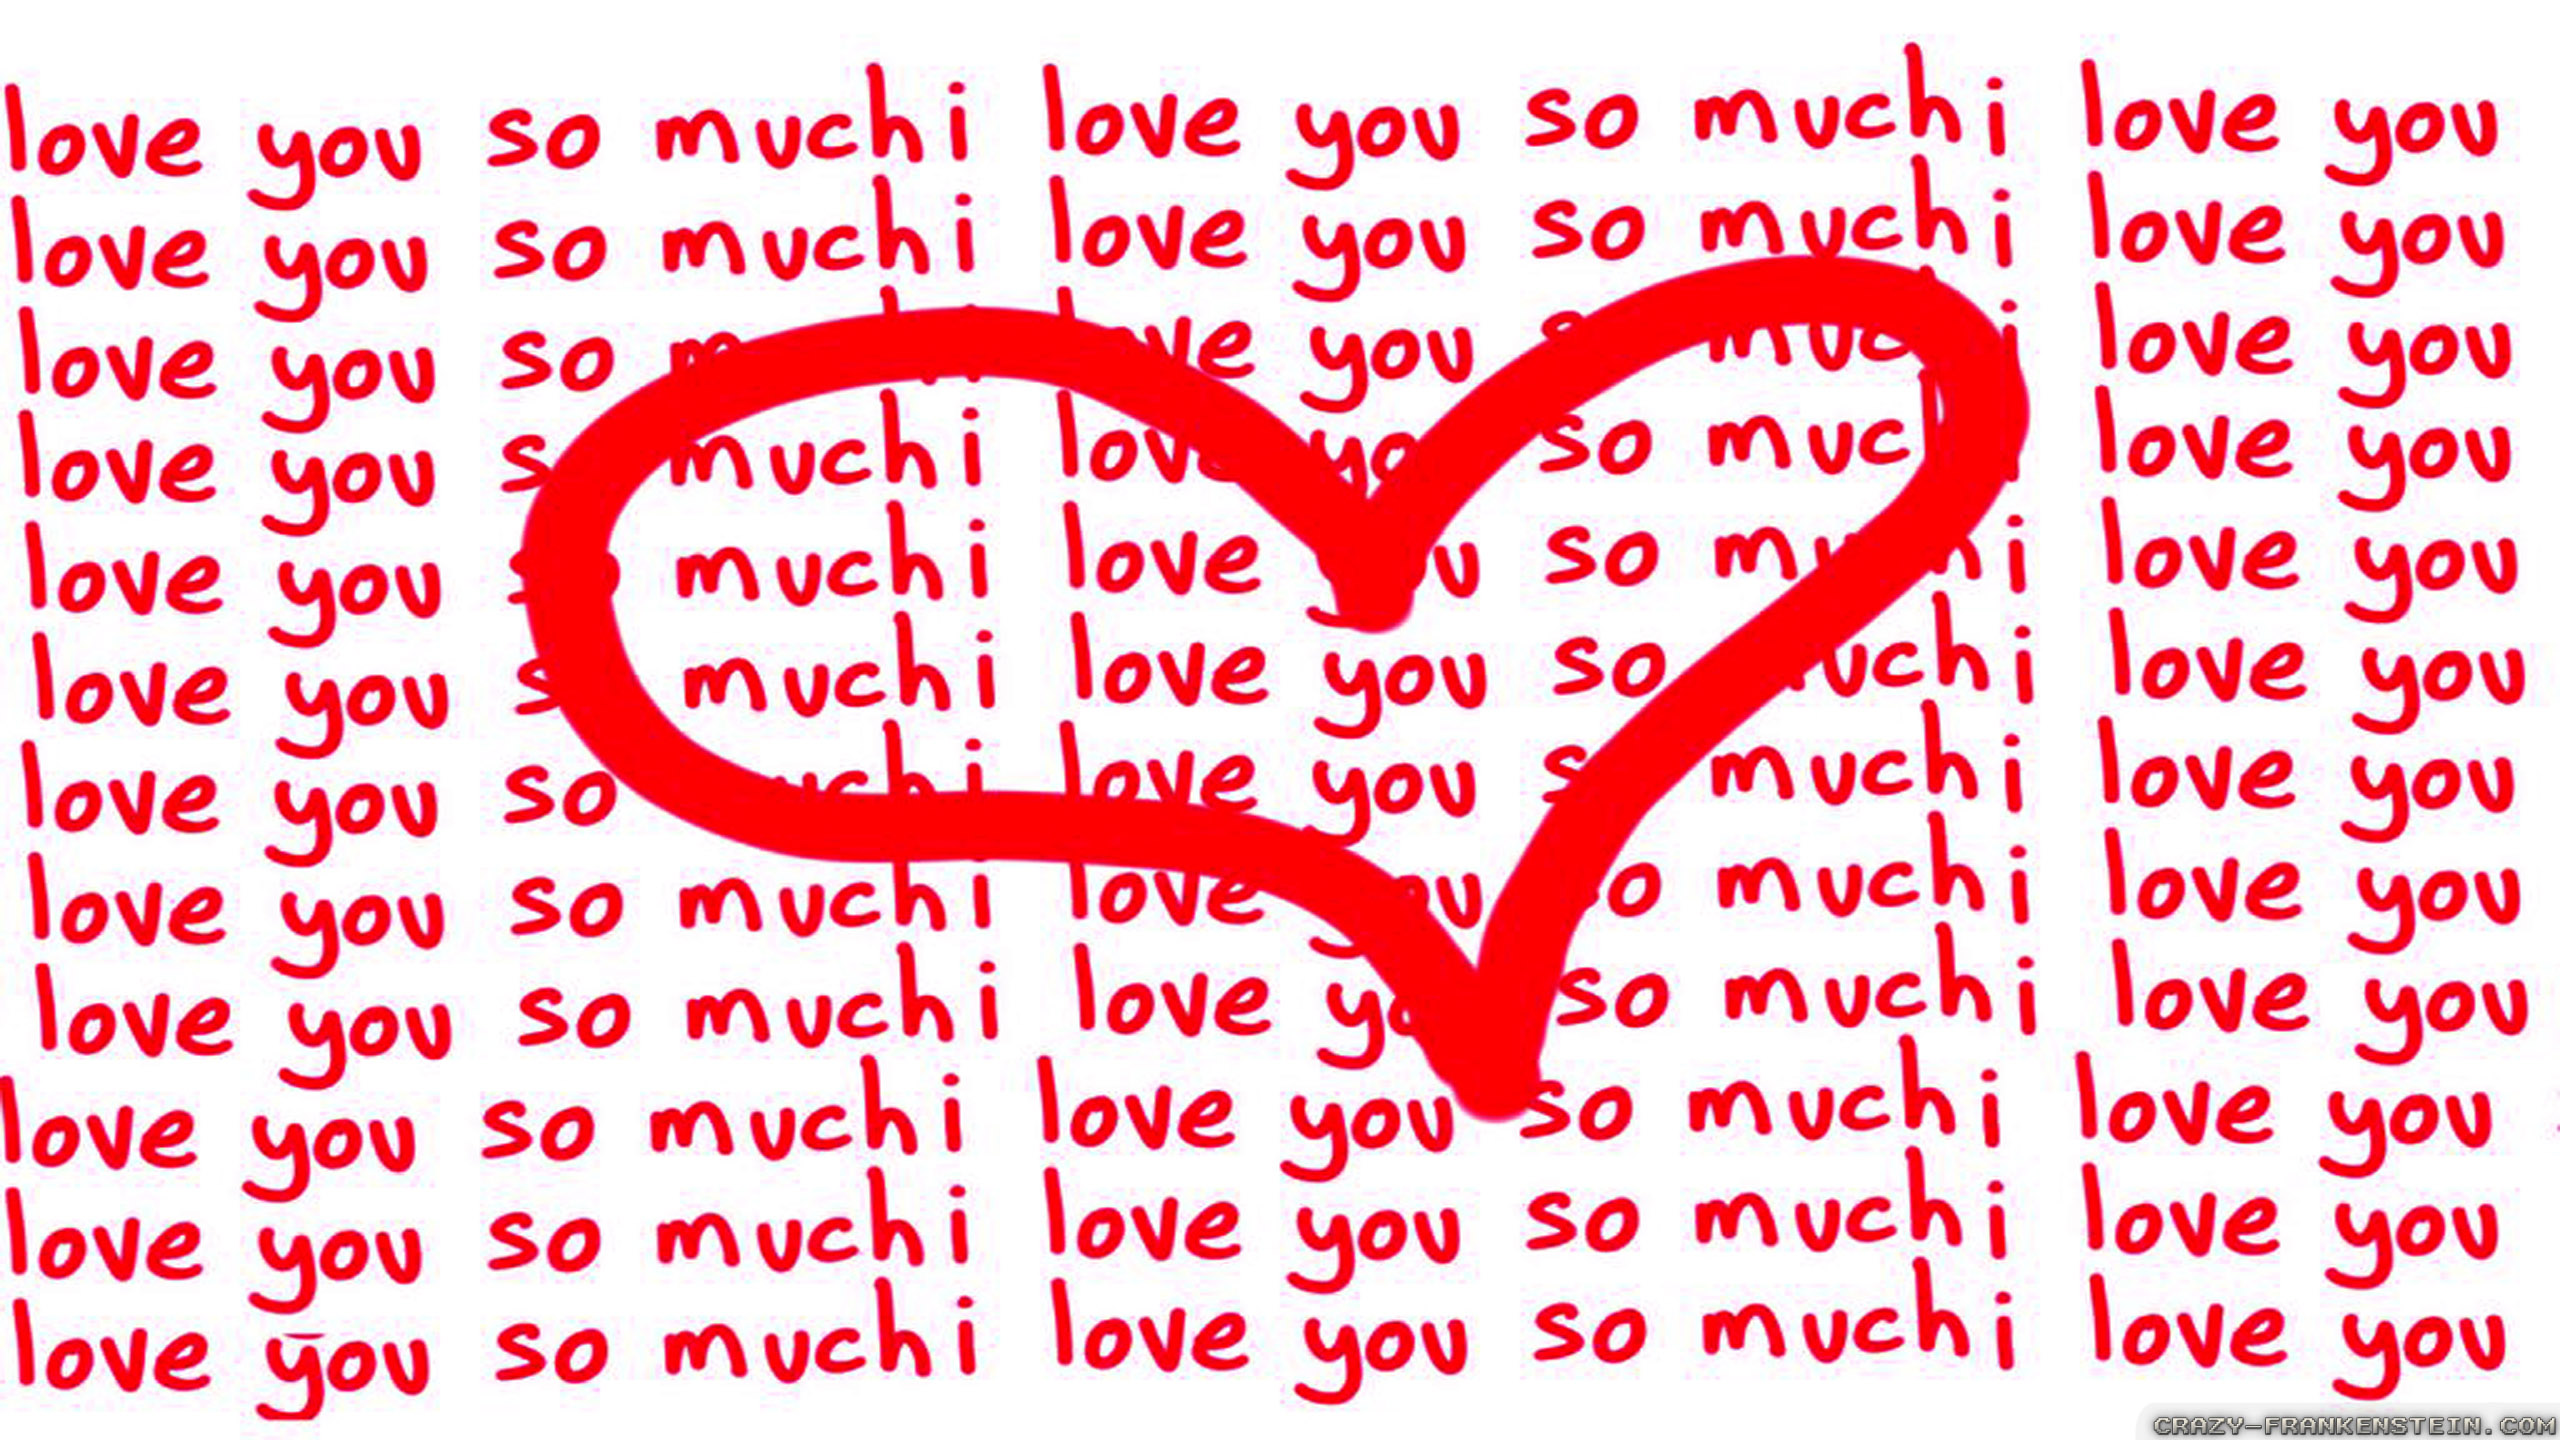 I Love You So Much Quotes For Him Pinterest : 581439346-i-love-you-so-much-quotes-84.jpg